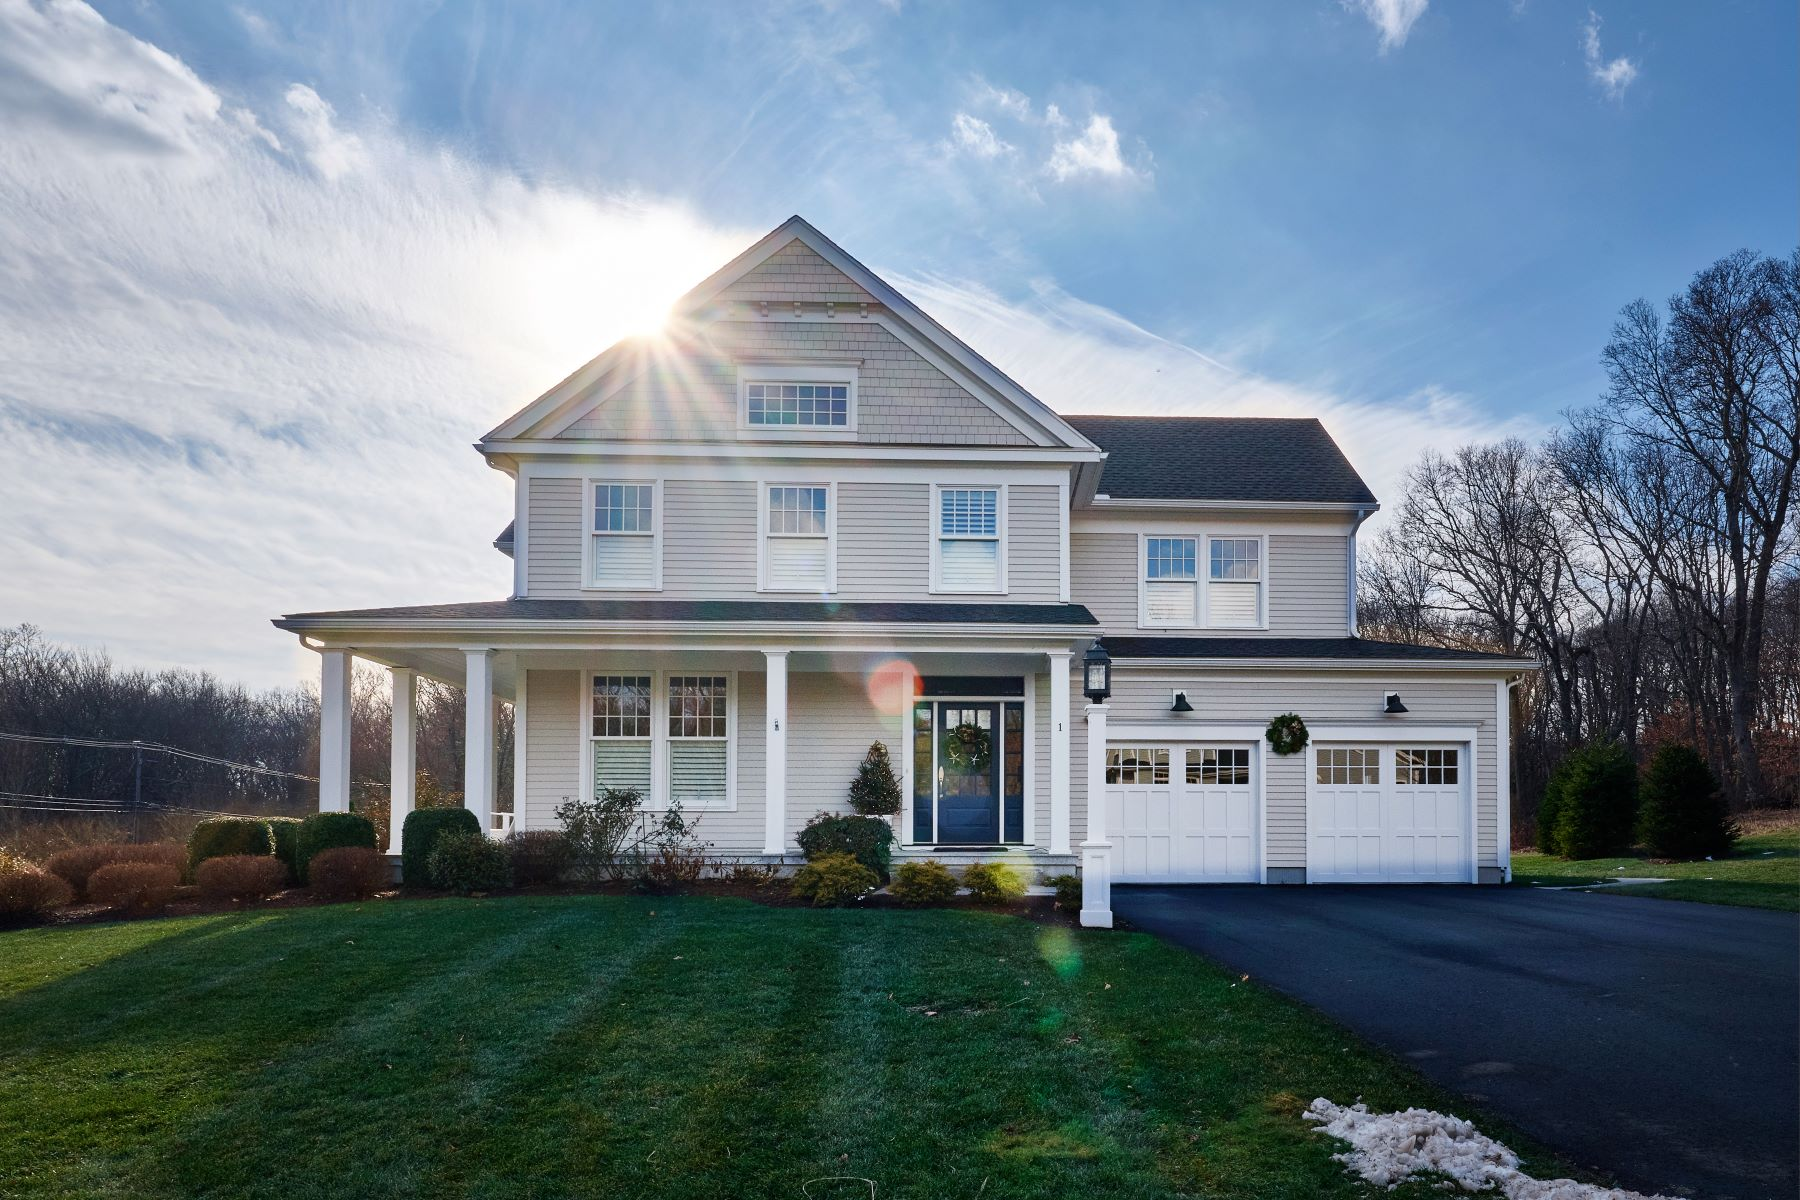 Single Family Home for Sale at Benton's Knoll in Sachem's Head 19 Benton's Knoll Guilford, Connecticut 06437 United States